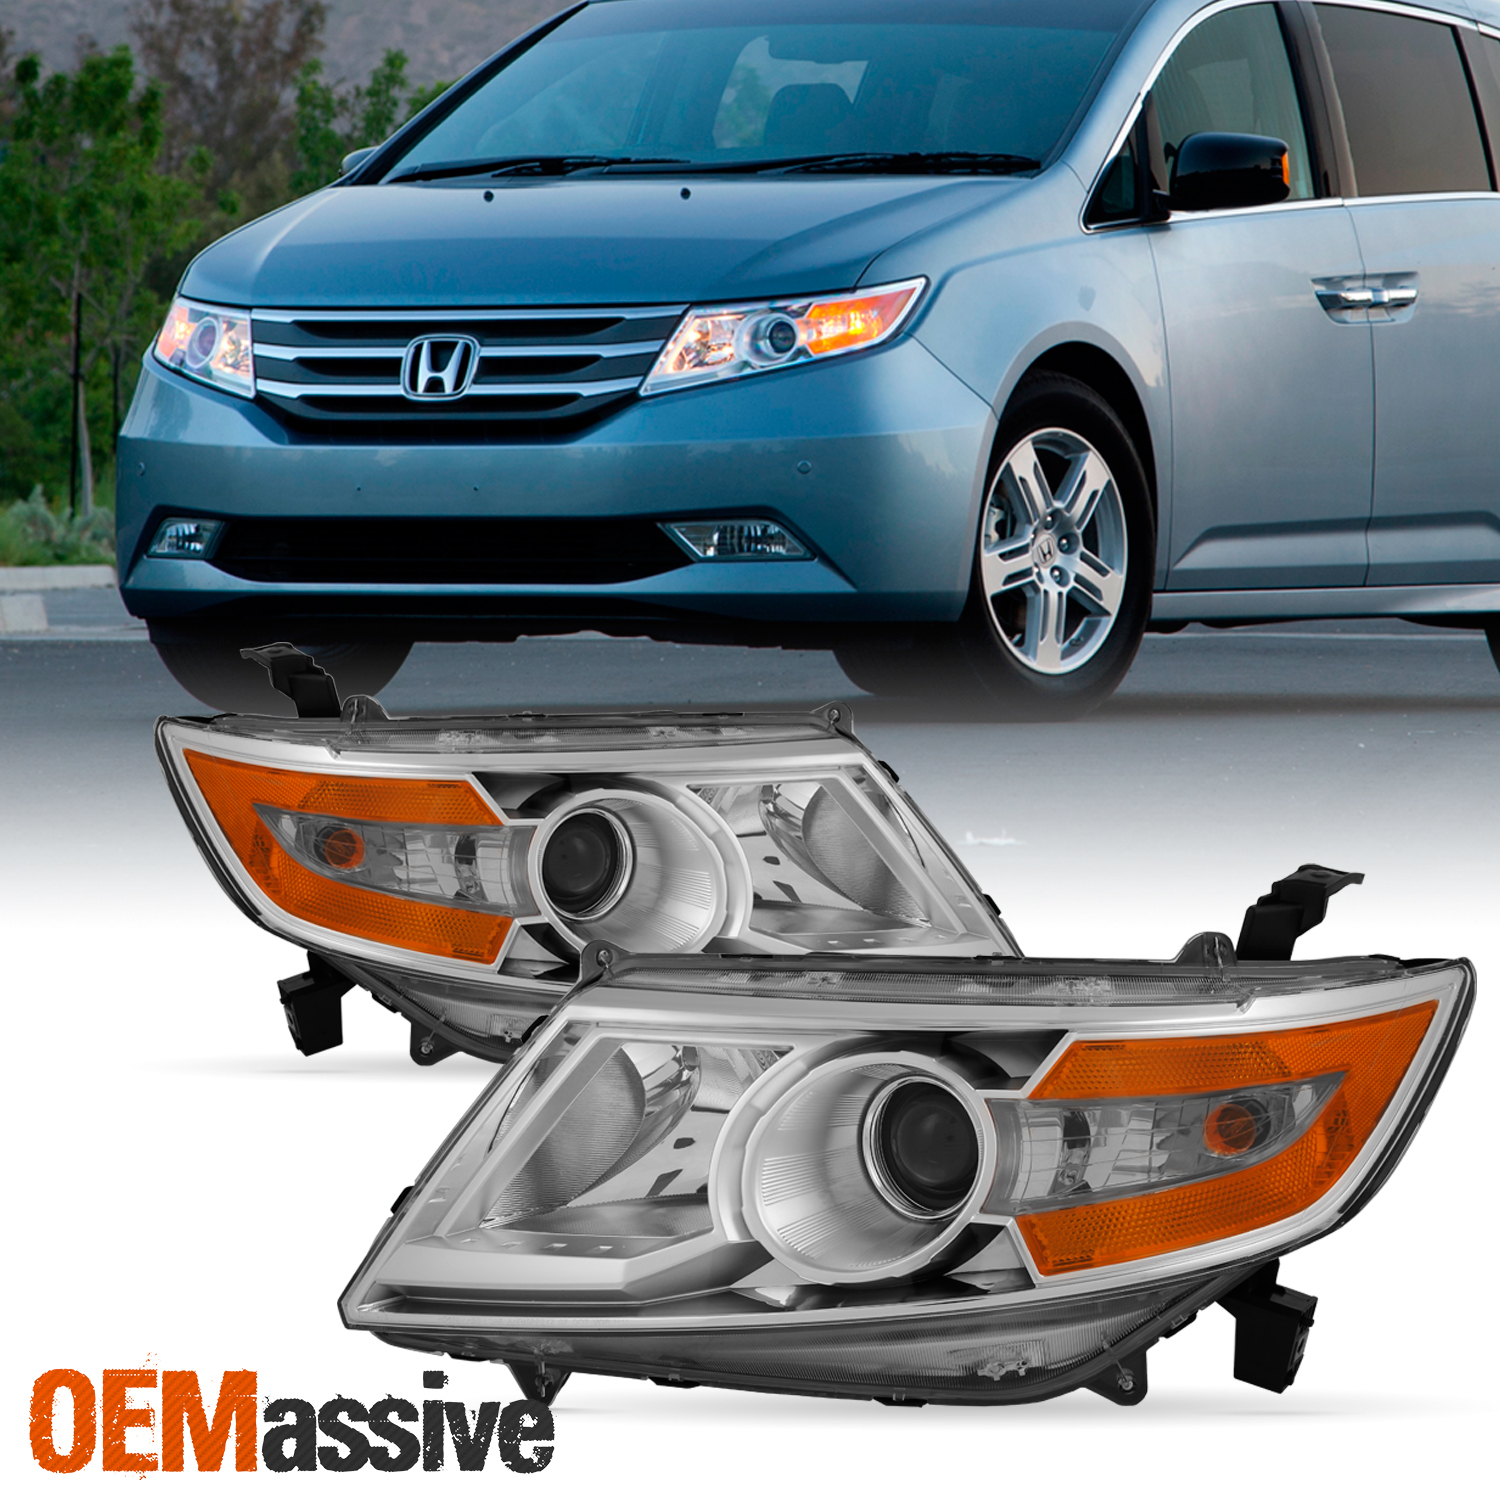 Chevy Cruze Fog Light Wiring Diagram Get Free Image About Wiring